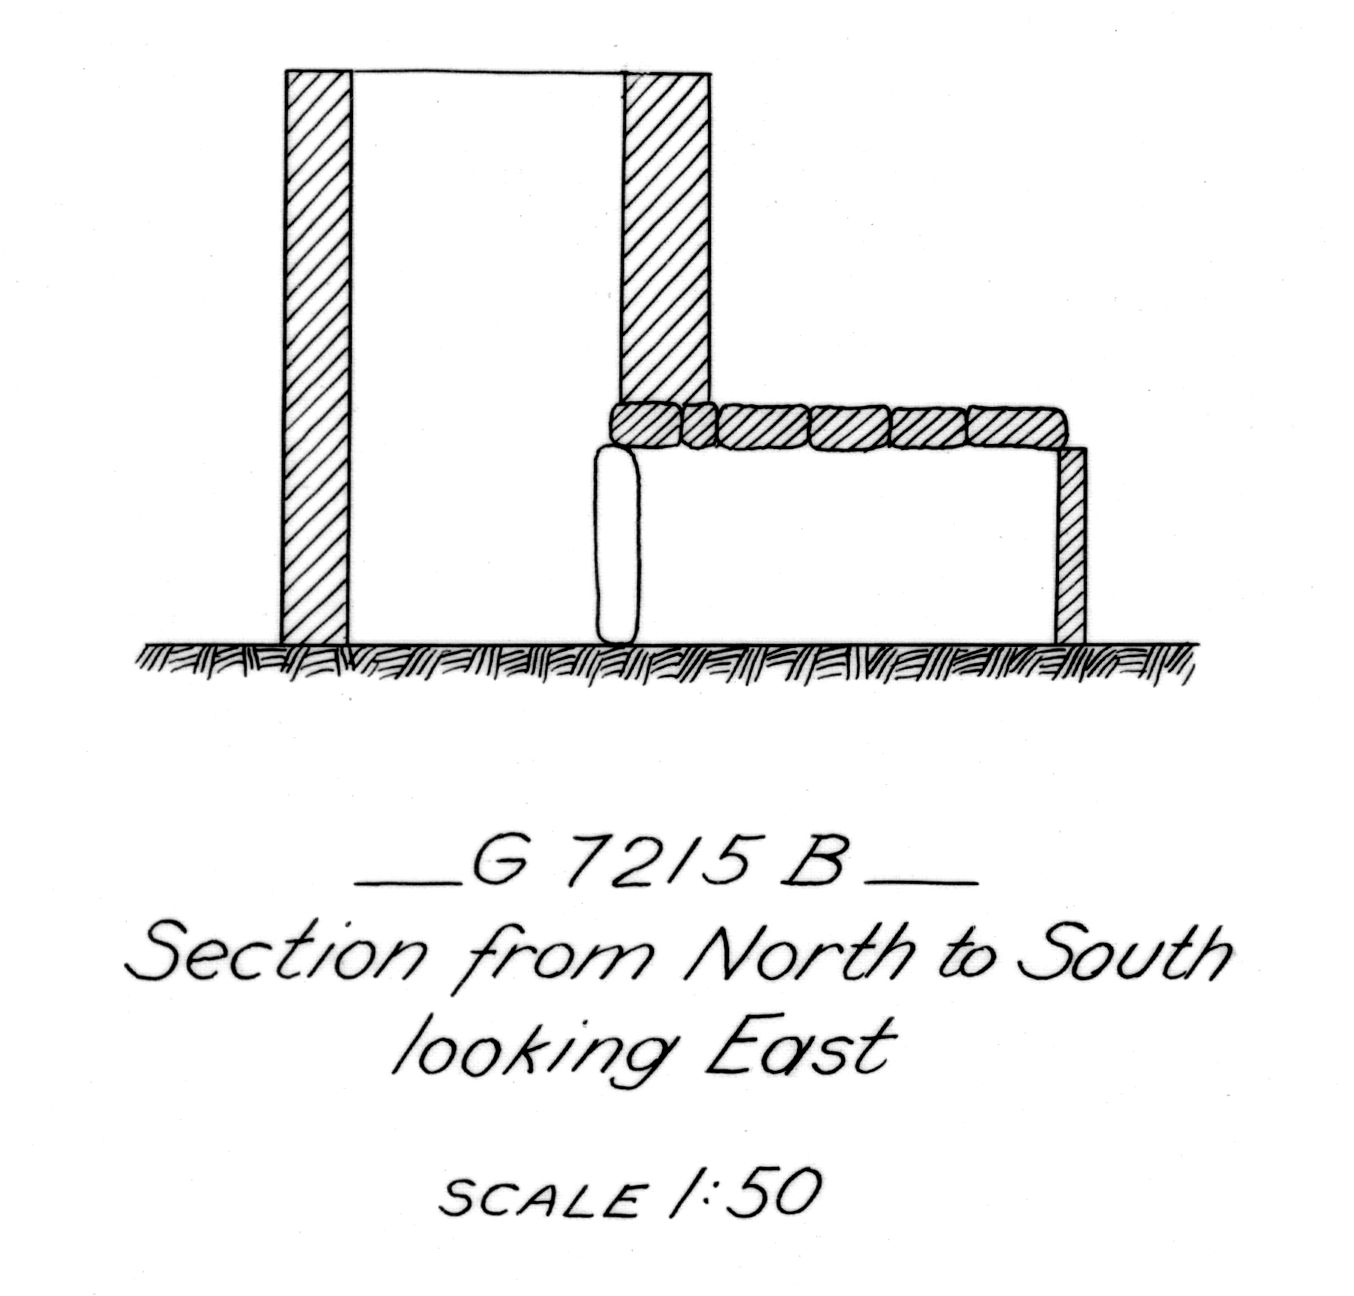 Maps and plans: G 7215, Shaft B